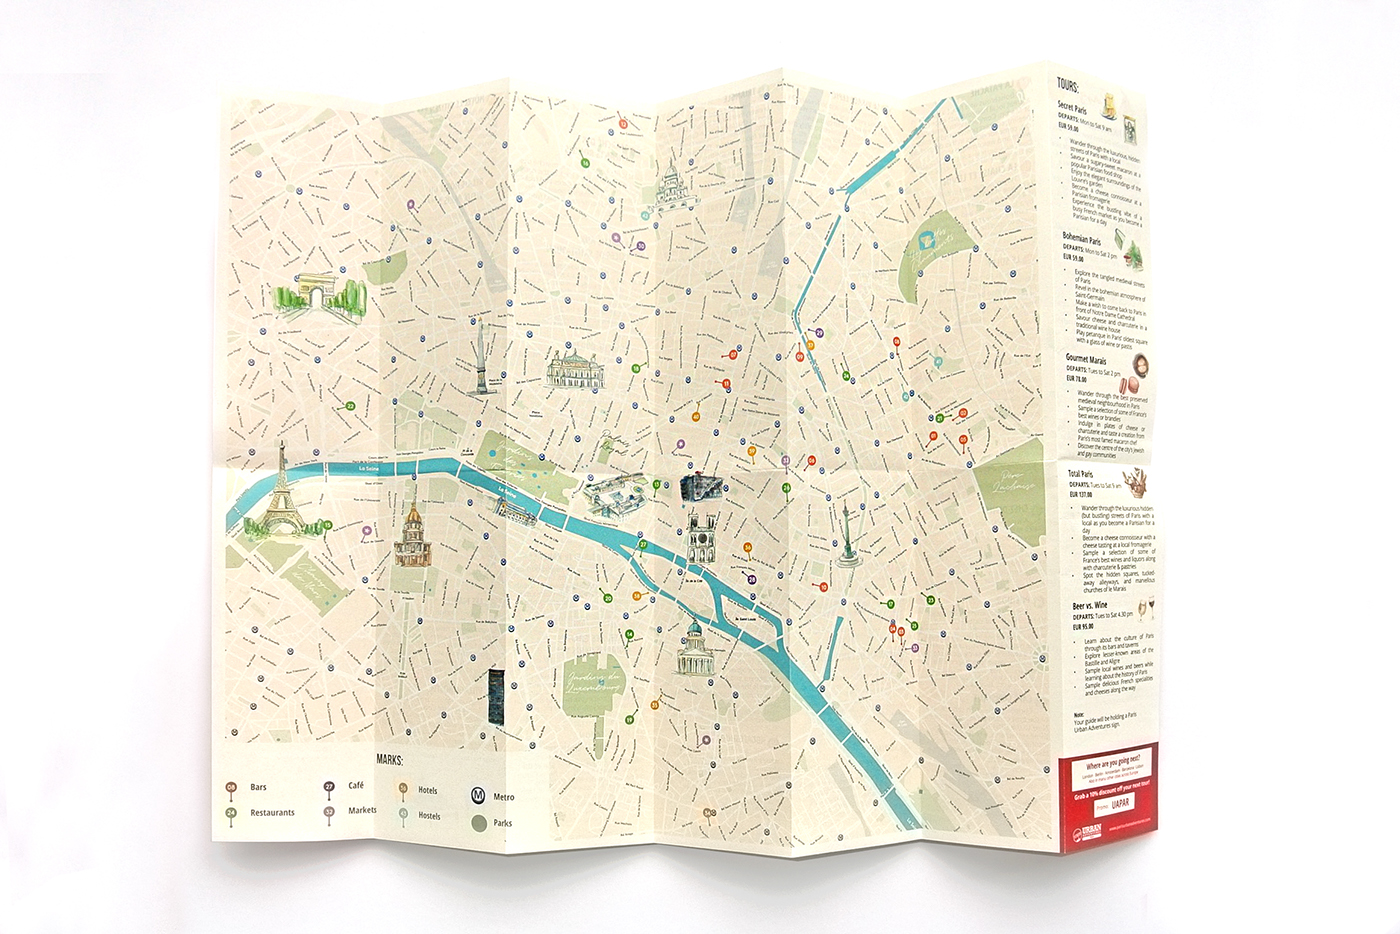 i worked with given list from agency and made simple clean practical travel guide for paris